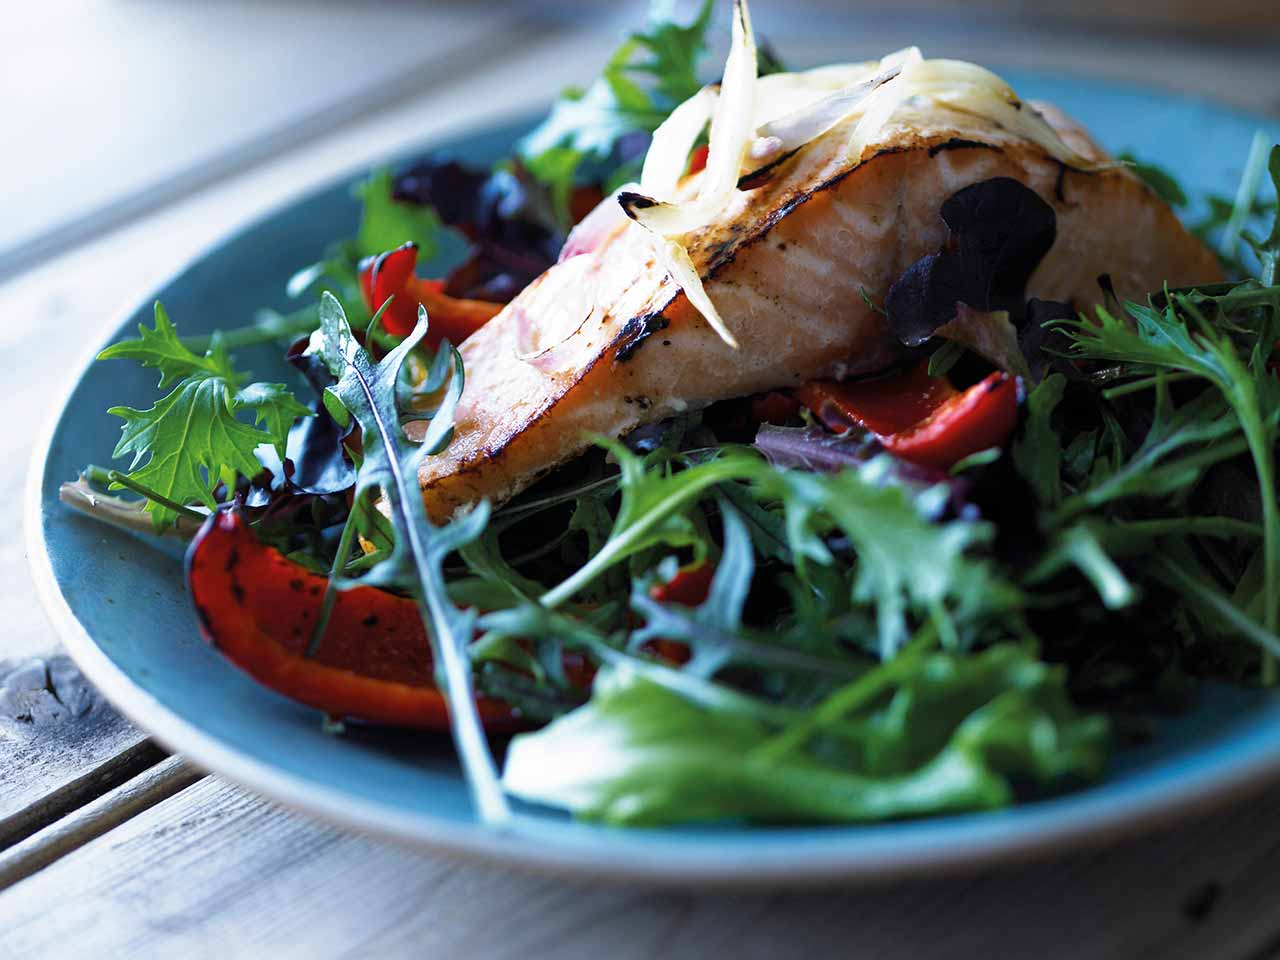 Rocket salad with salmon